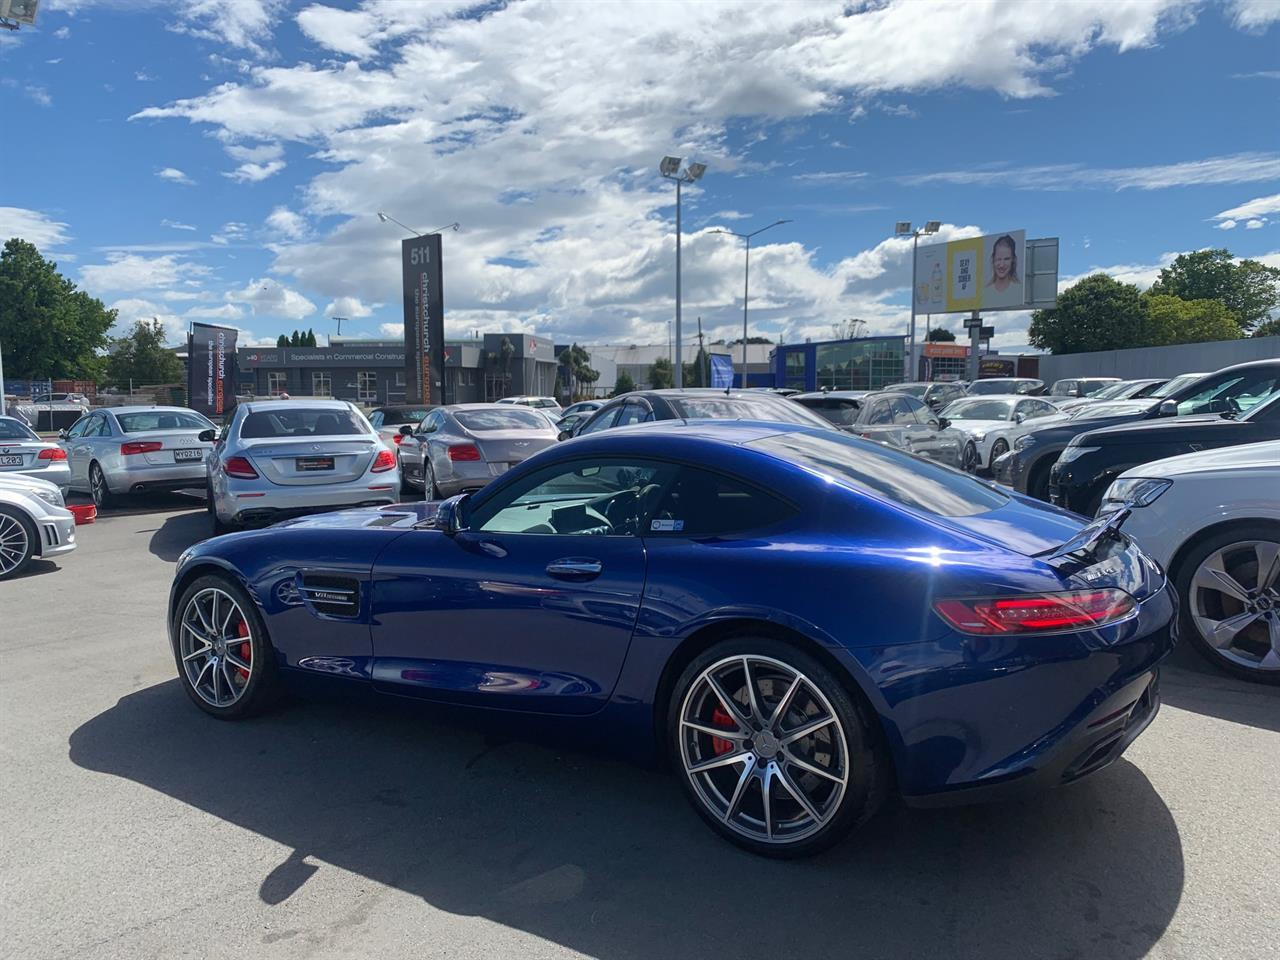 image-2, 2017 MercedesBenz AMG GT-S 4.0 V8 Coupe at Christchurch